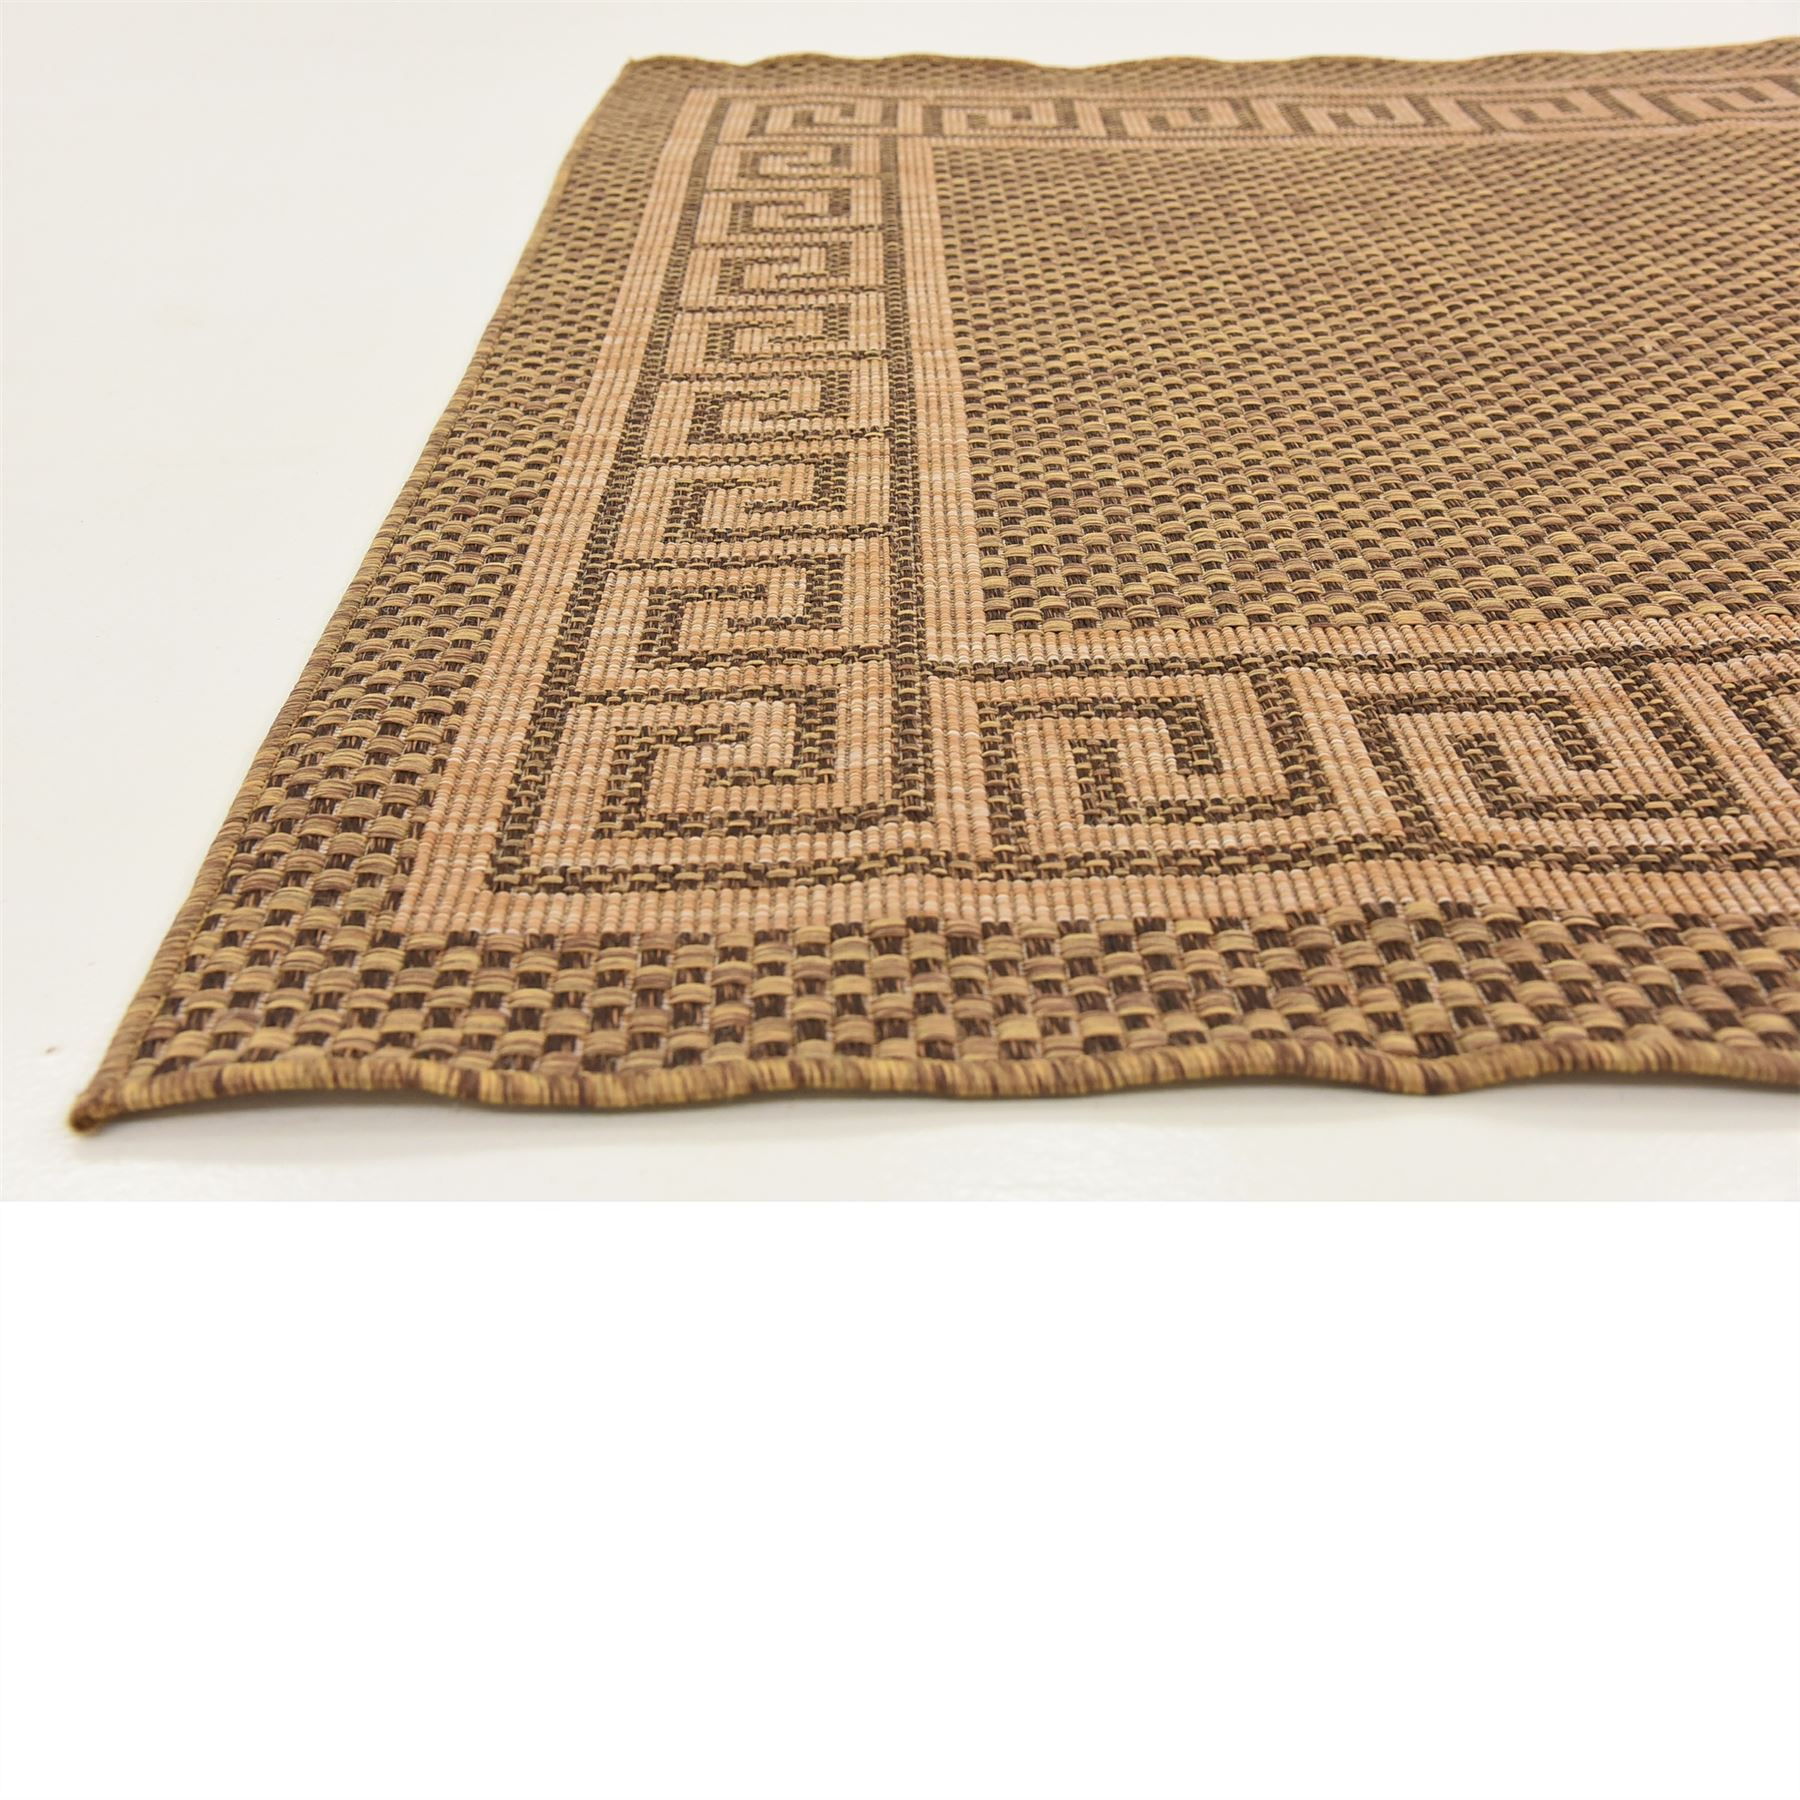 Modern-Outdoor-Thin-Area-Rug-Contemporary-Plain-Large-Small-Carpet-Gray-Brown thumbnail 6